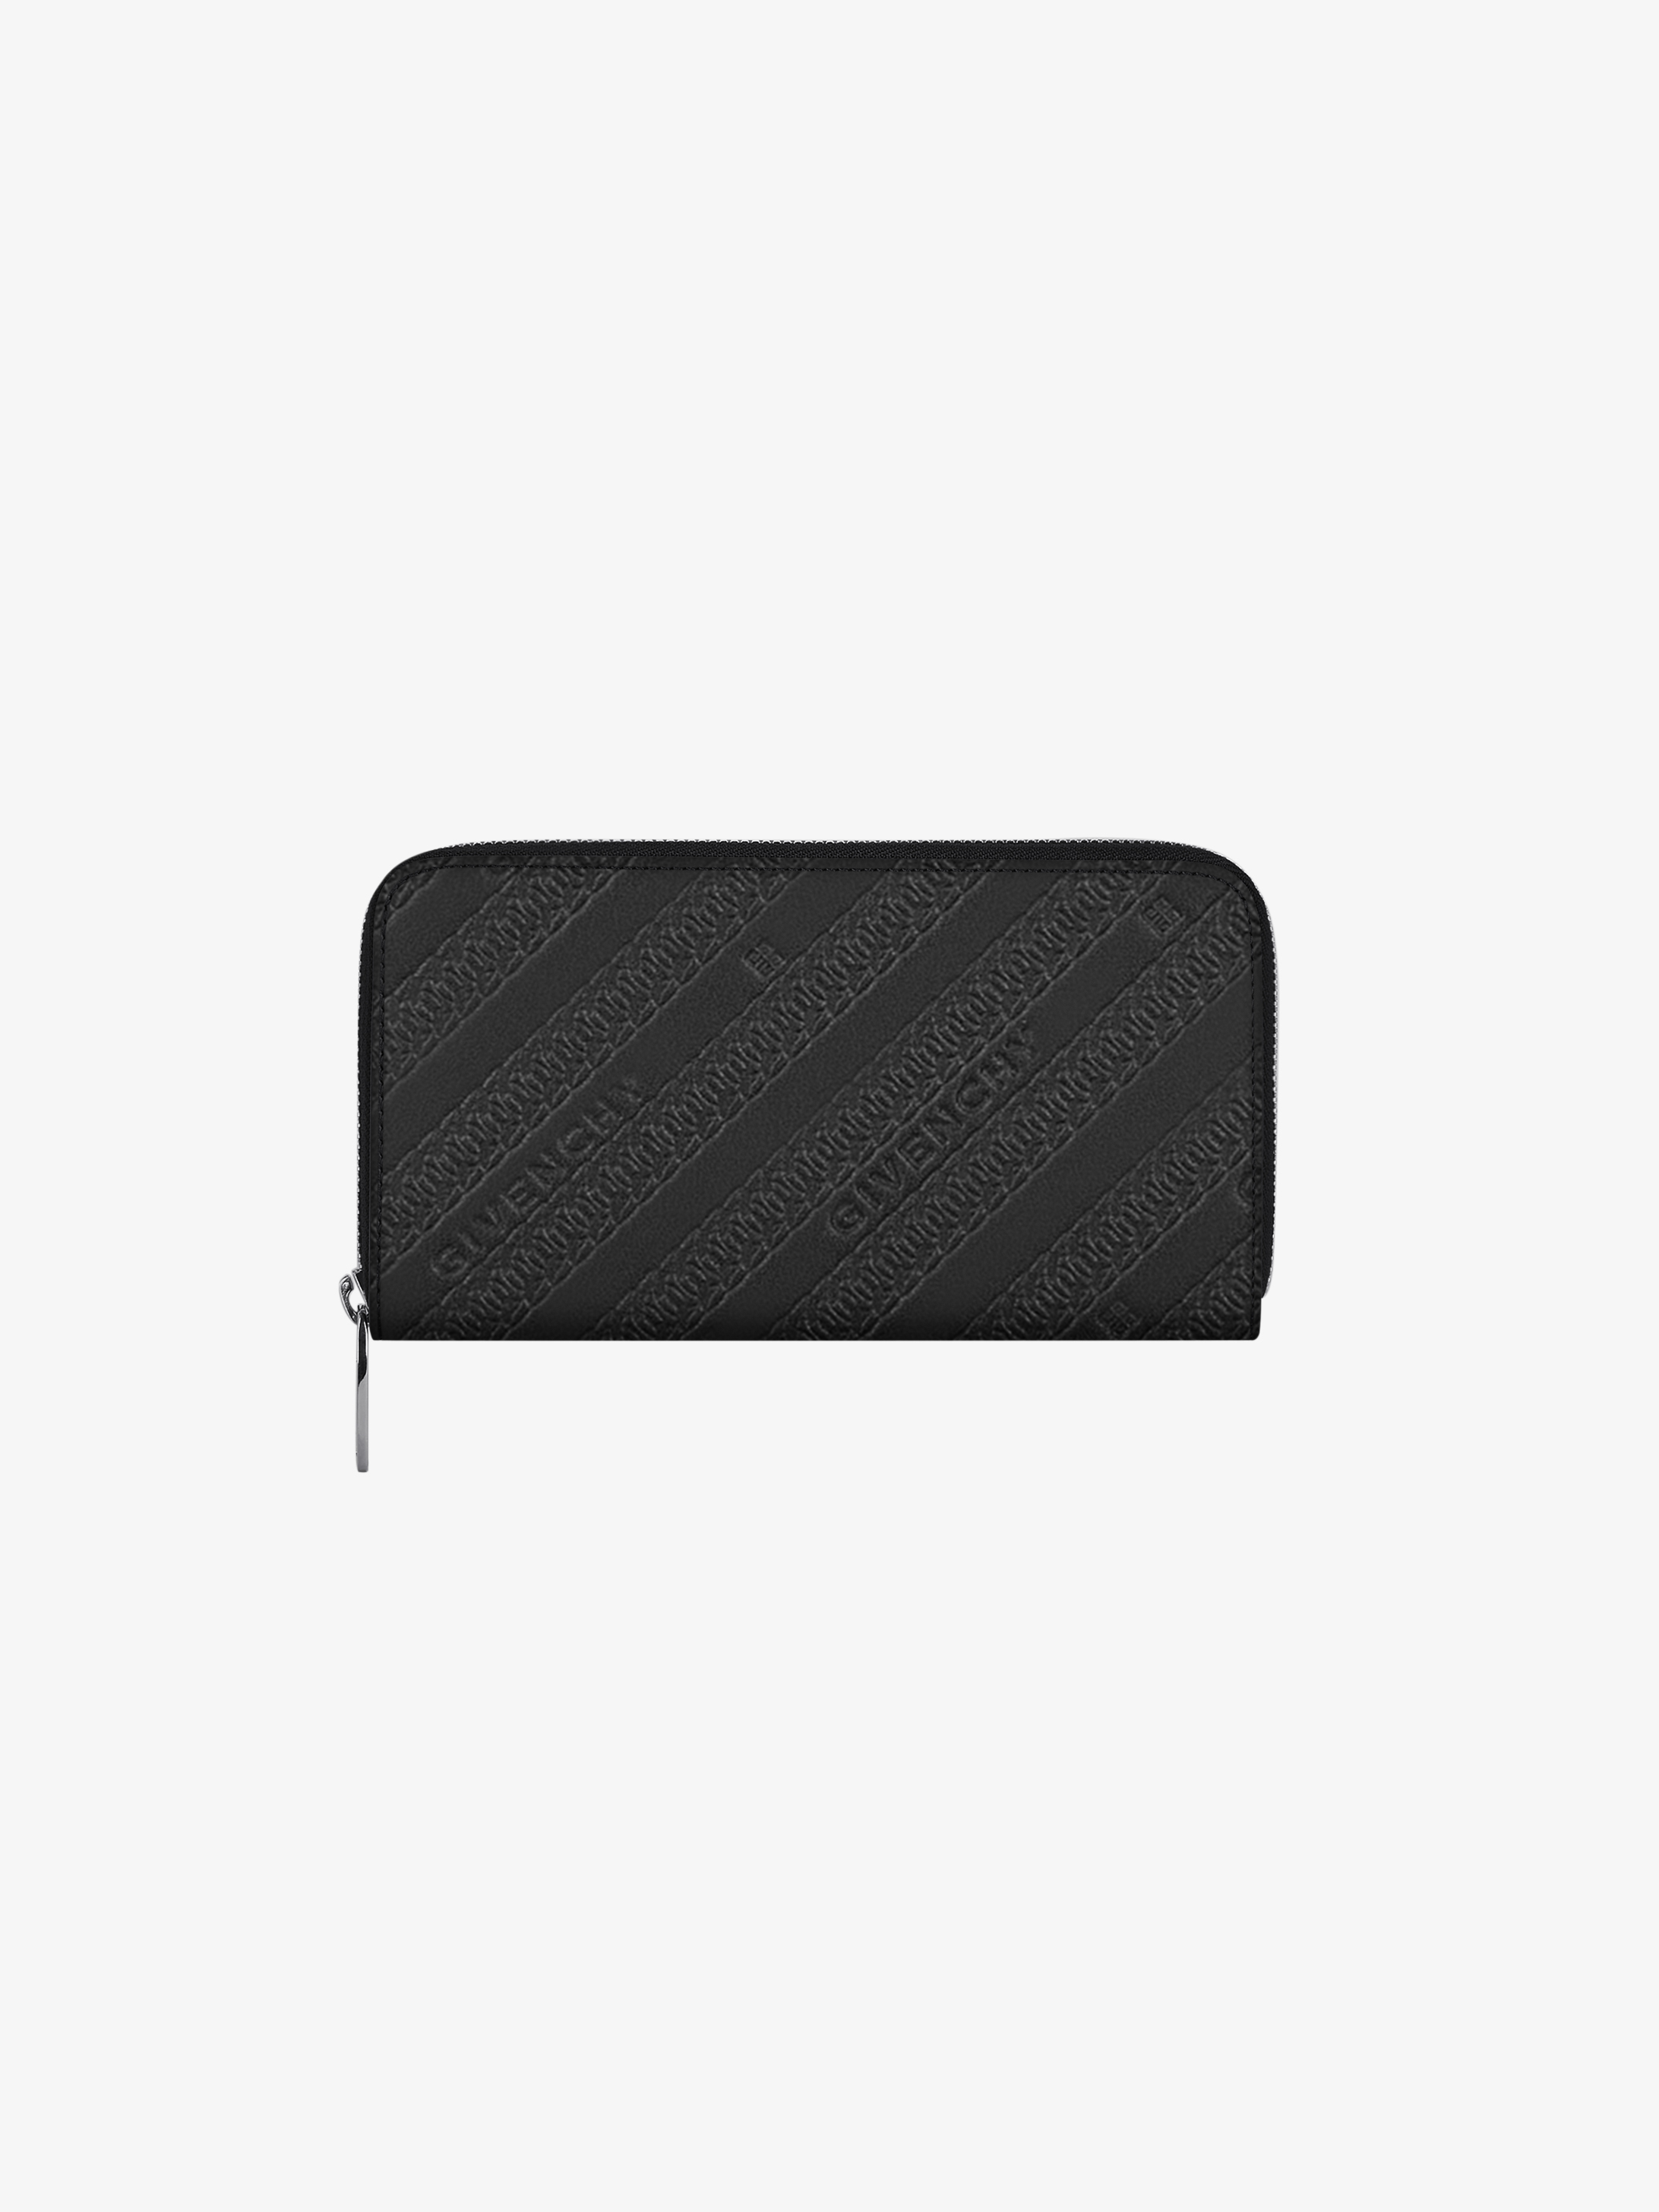 GIVENCHY long zipped wallet in leather